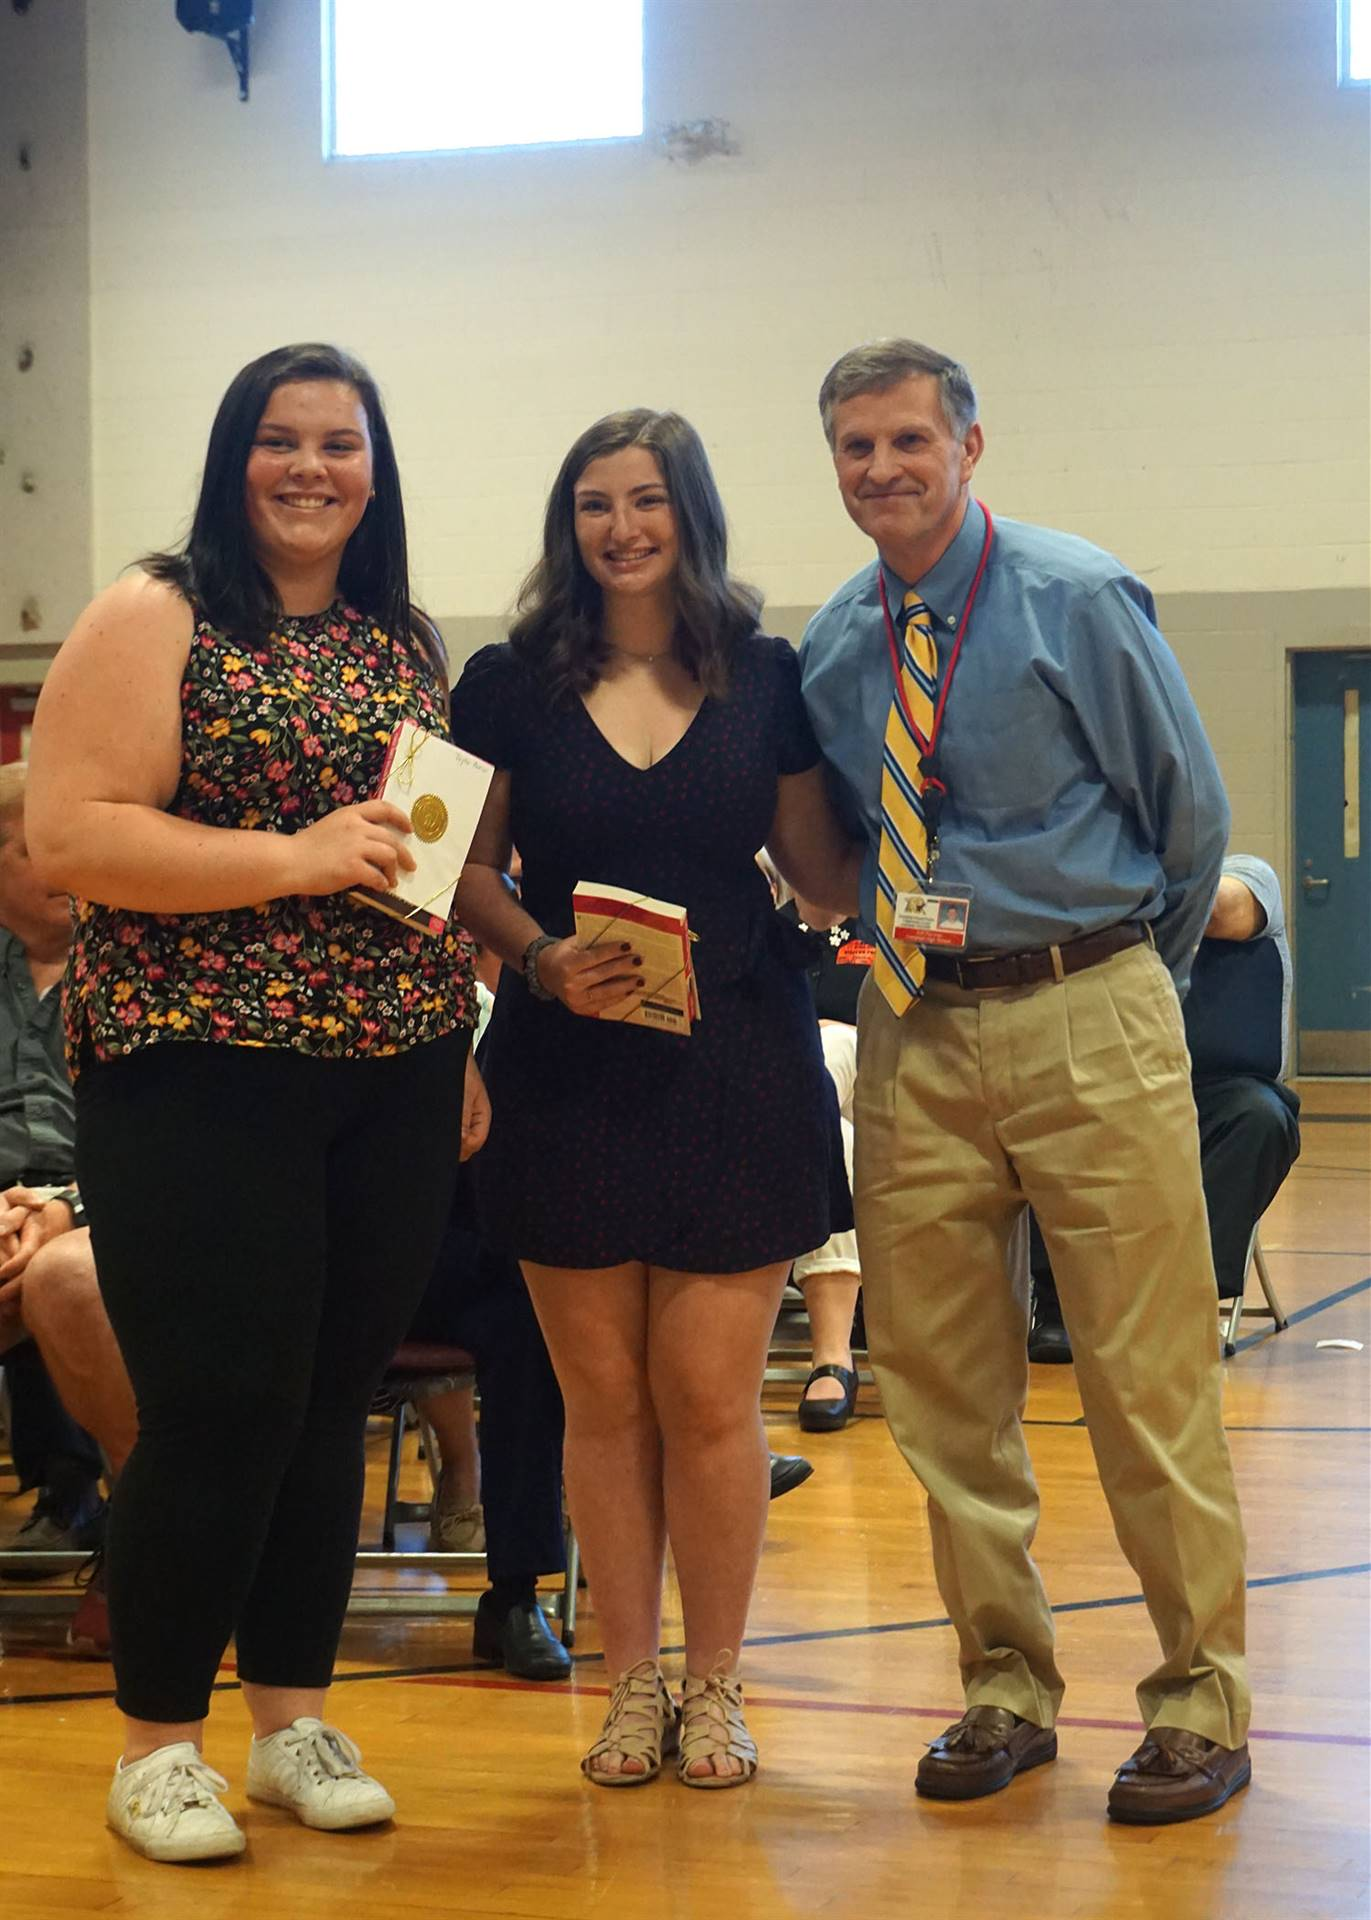 Saint Michael's College Book Award for Academic Achievement with a Social Conscience